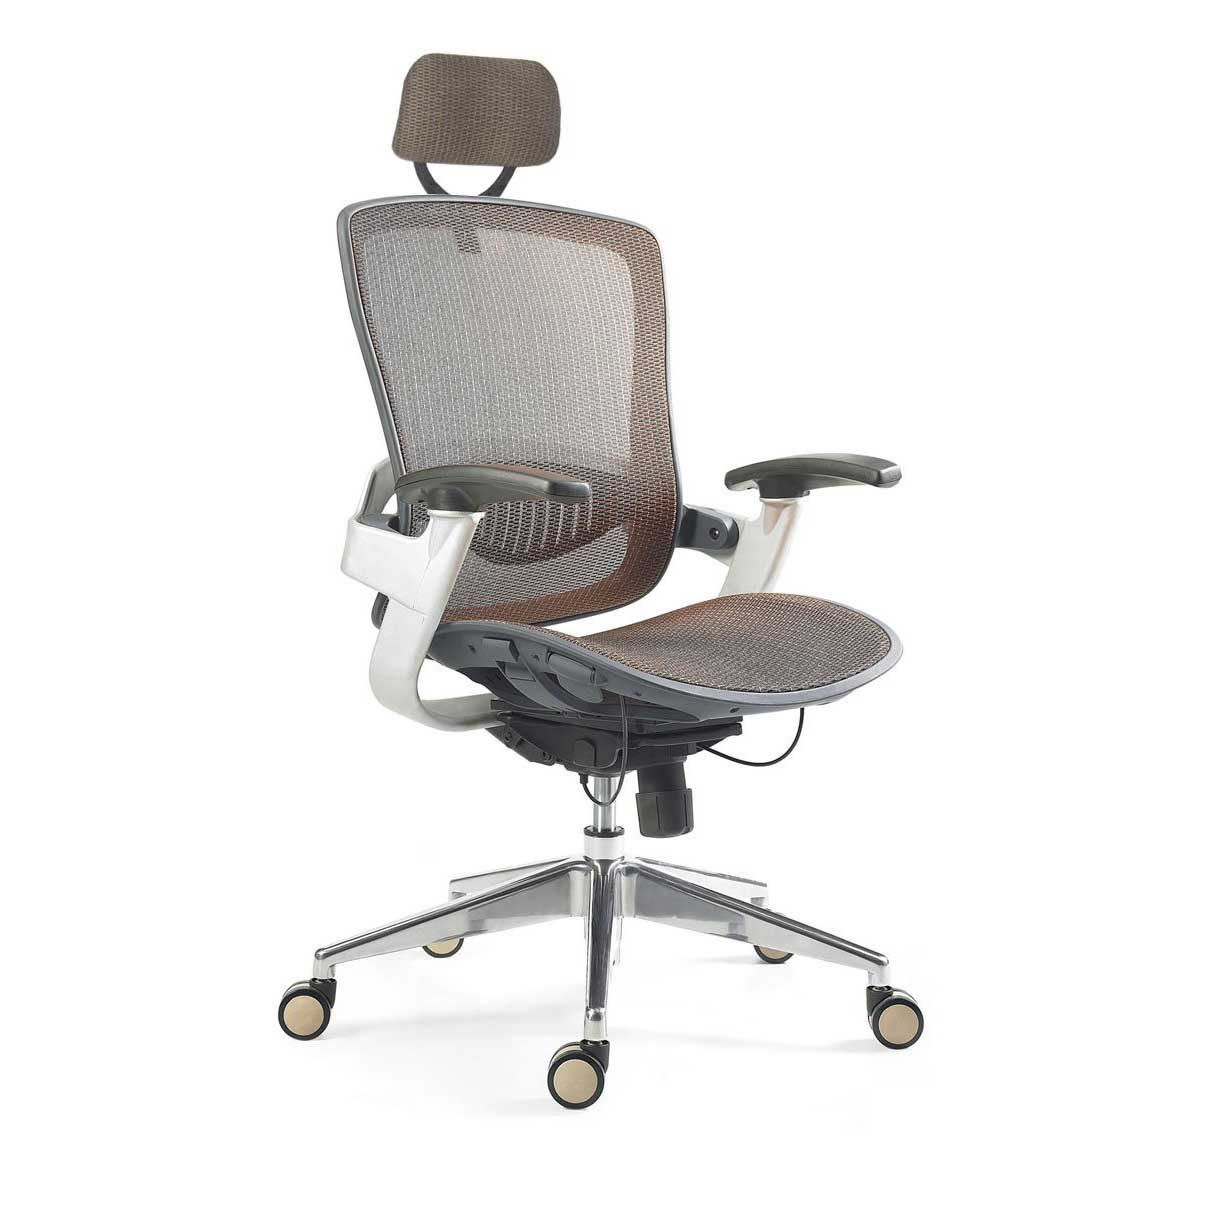 Mesh Computer Chairs For Home Office Interior